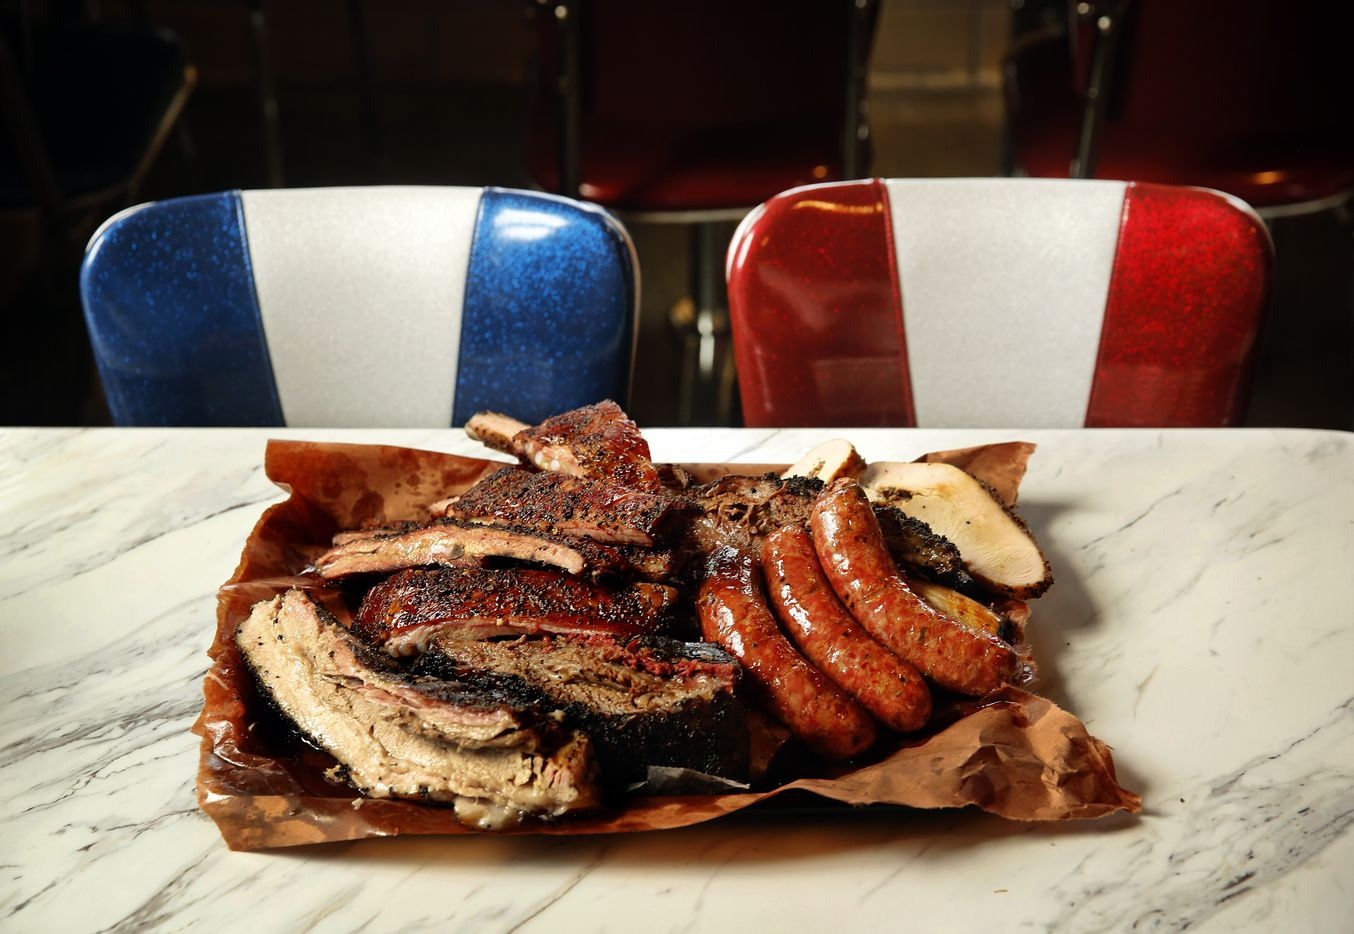 A full platter of smoked turkey, pork ribs, brisket, beef ribs, sausage, and pork belly are served up at Killen's BBQ in Pearland, Texas, Saturday, June 28, 2014. (Tom Fox/The Dallas Morning News) 08032014xTRAVEL 08102014xTRAVEL